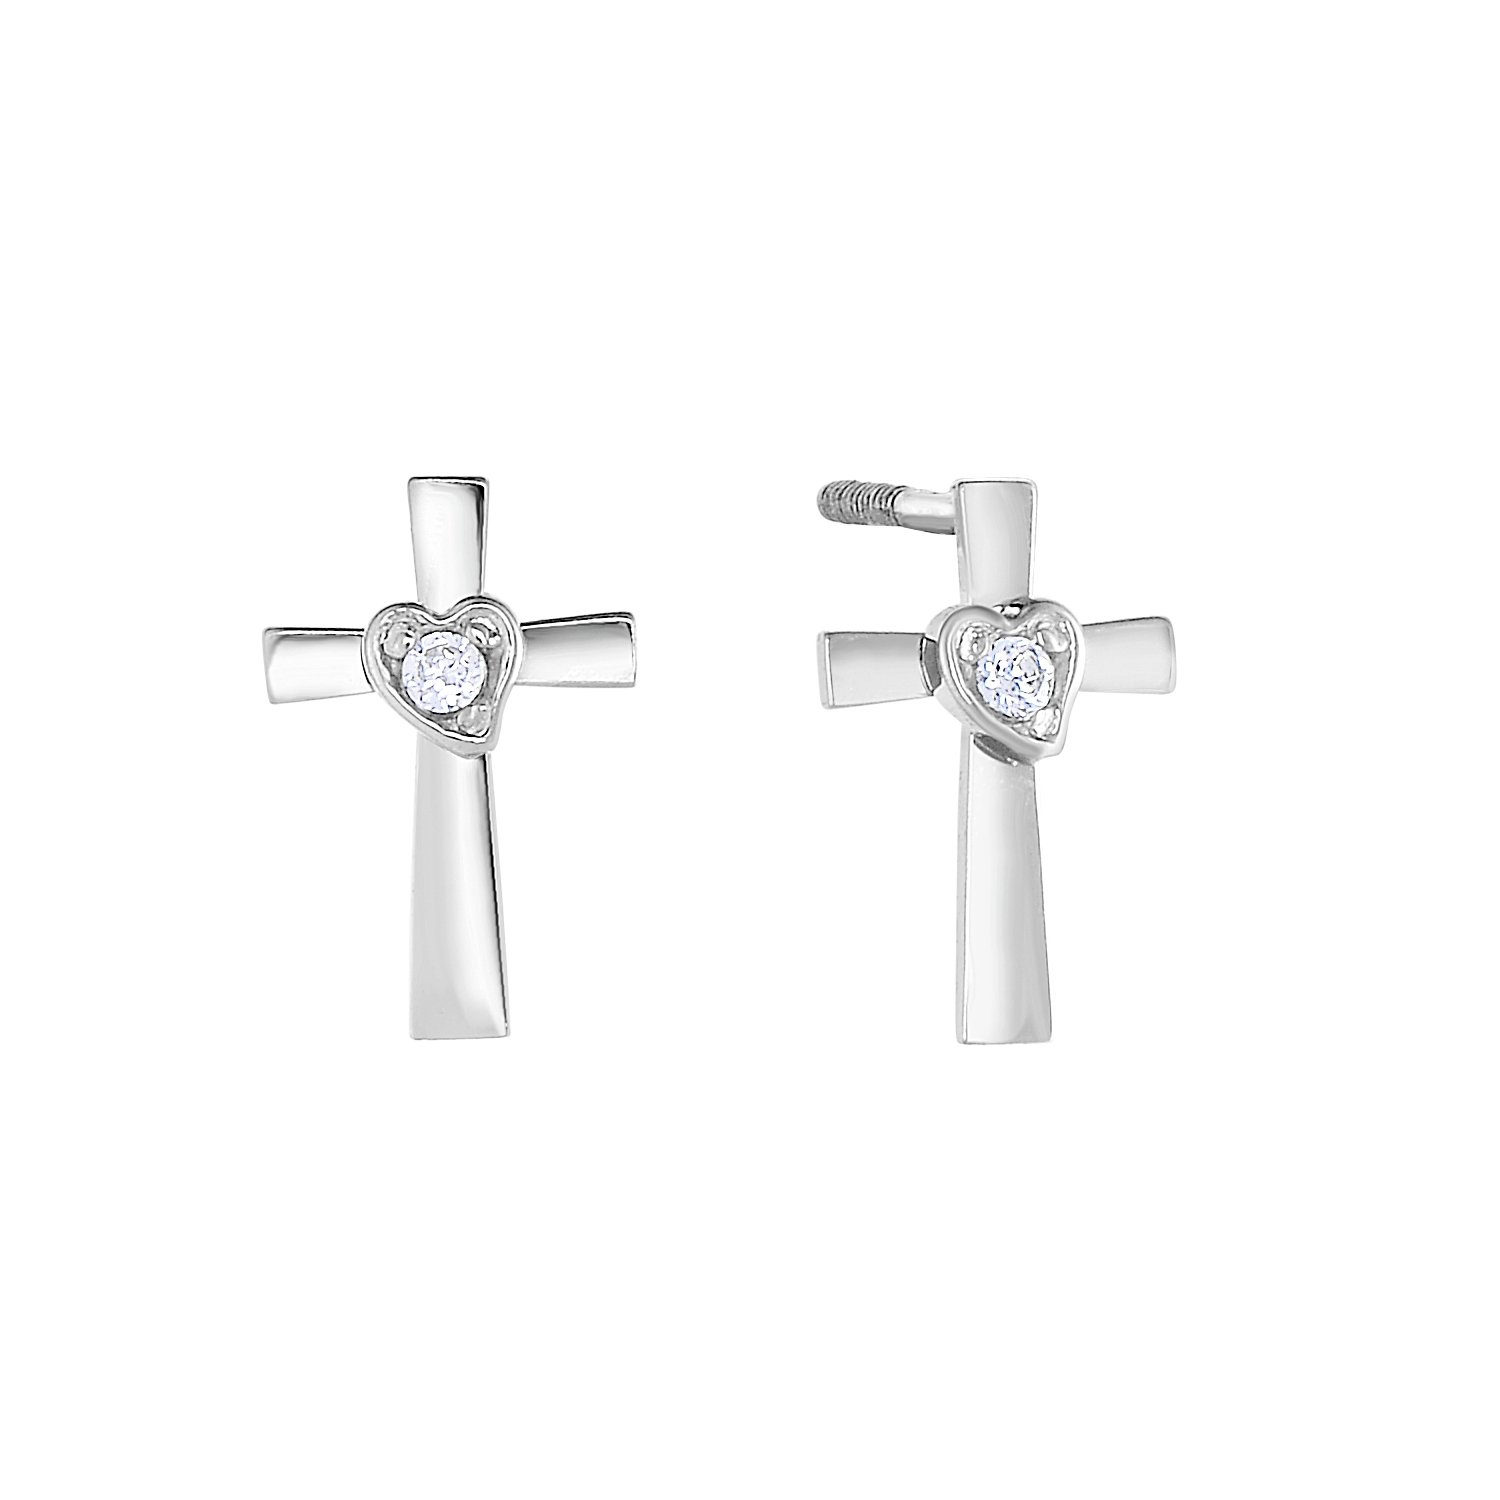 14k Gold Solitaire CZ Tiny Cross /& Heart Stud Earrings for Girls with Secure Screw-Backs NY Gold and Silver Inc 30-8